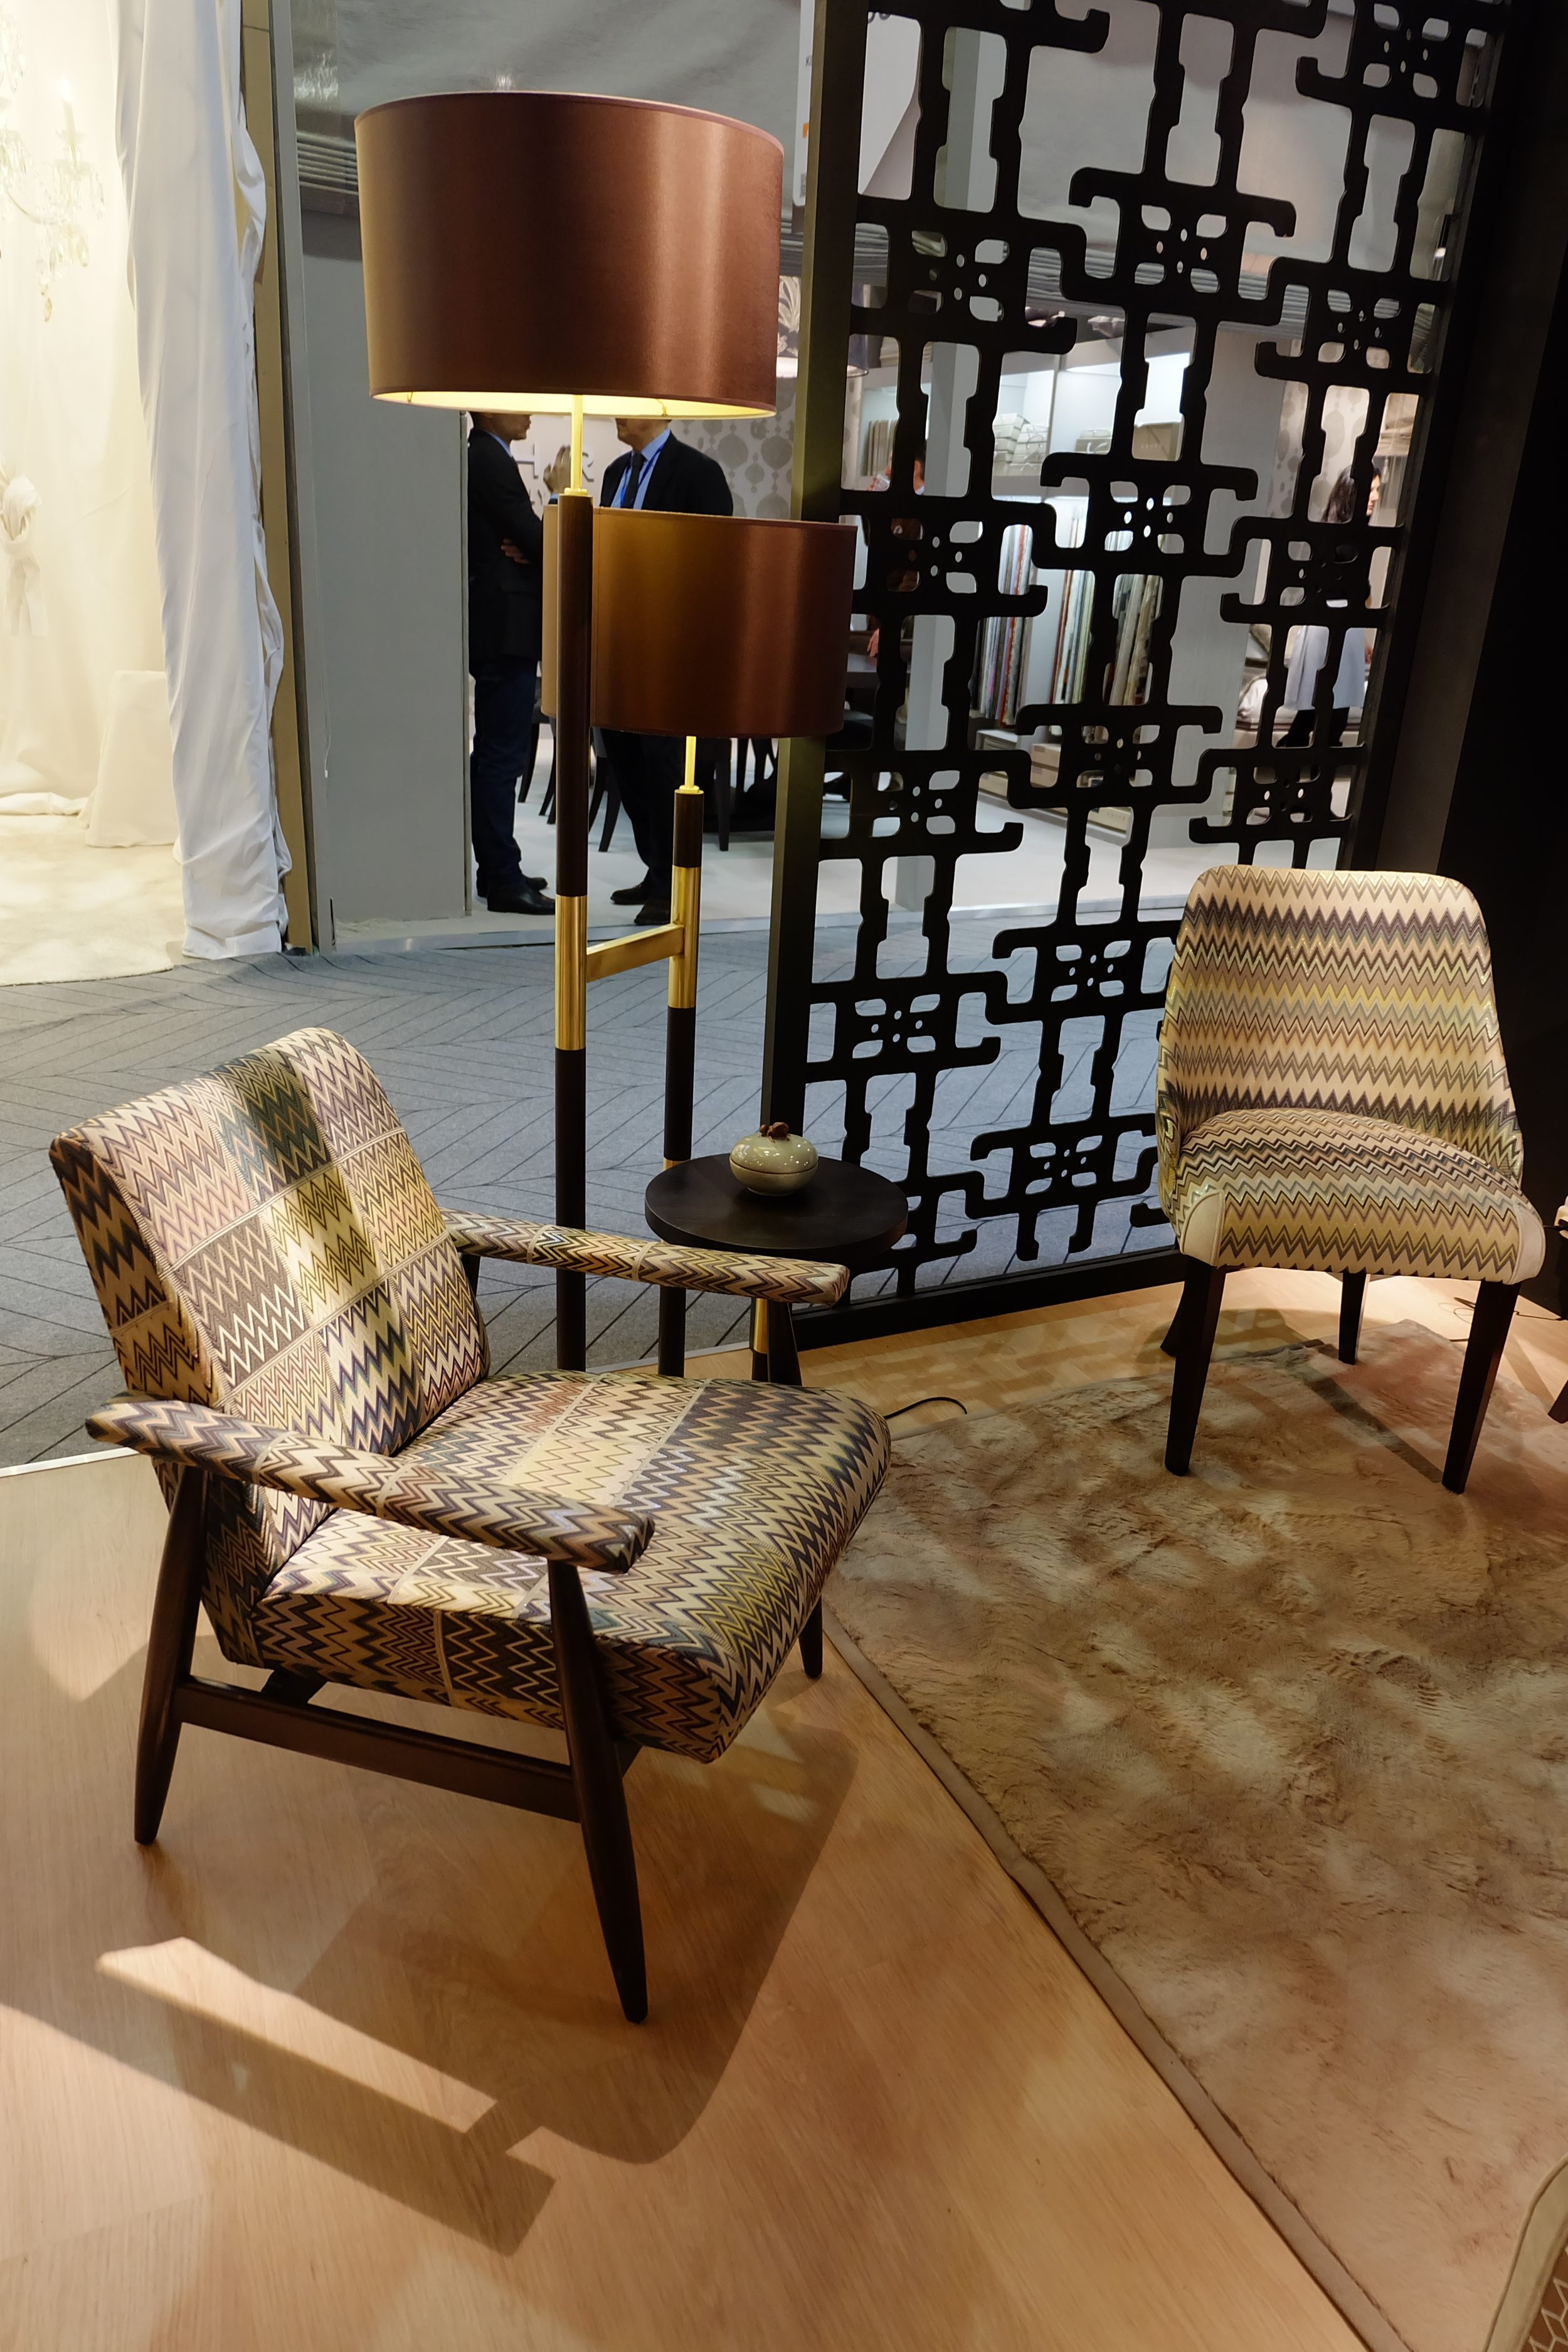 Maison & Objet 2016 Highlights - Brass detailing is an elegant addition to a contemporary interior design scheme | MSH Agency